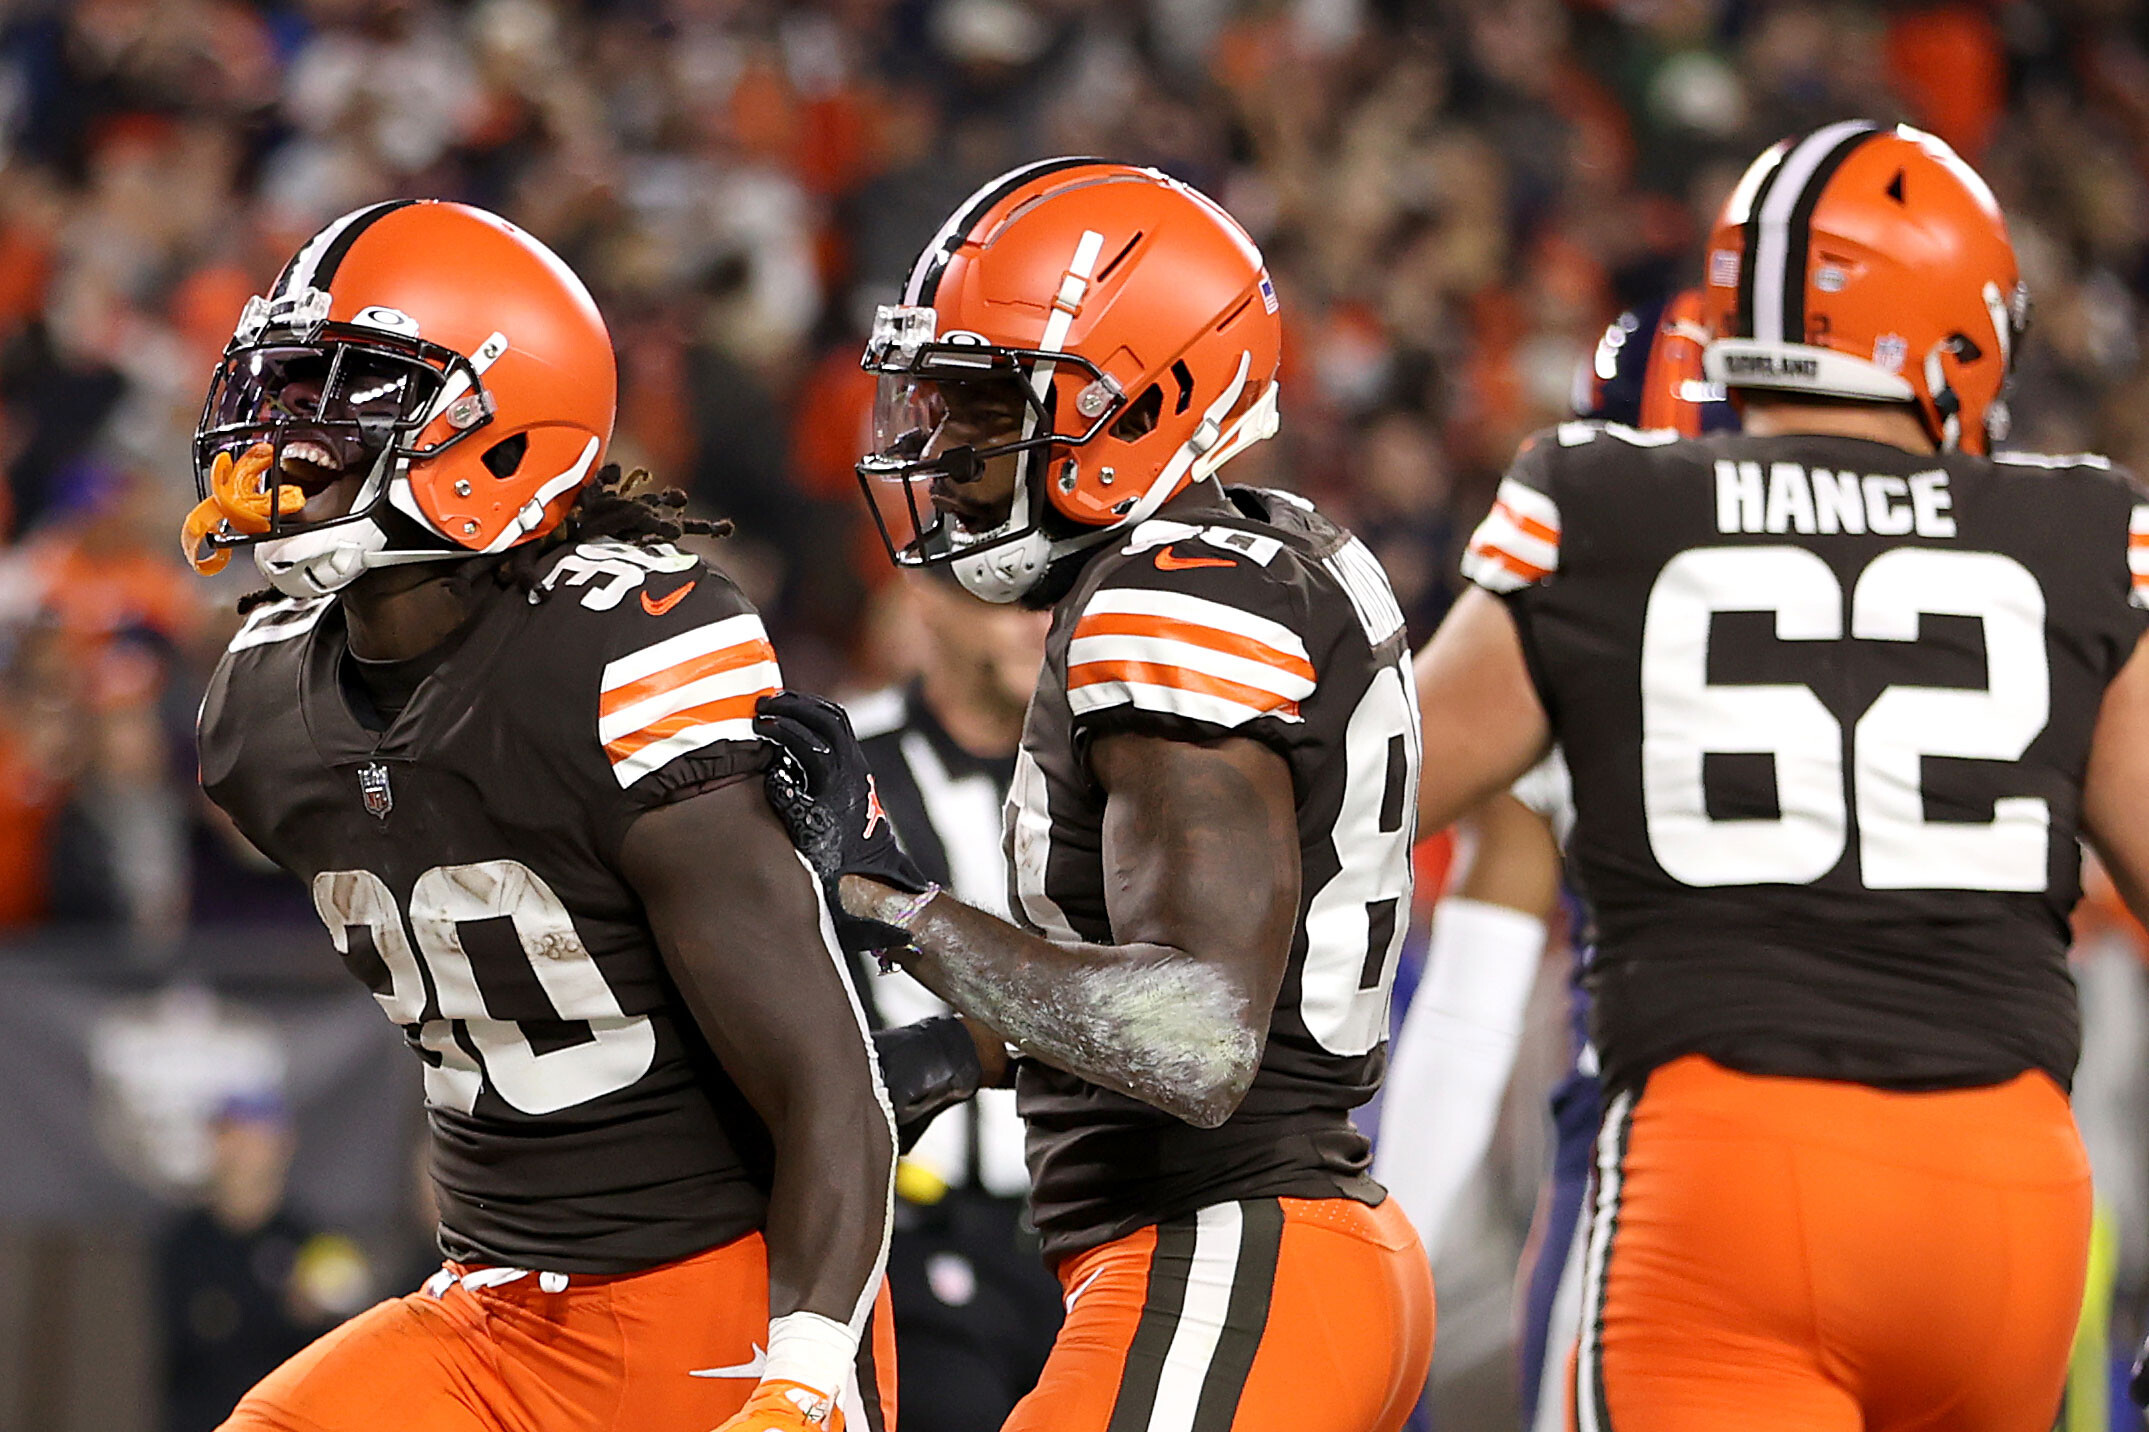 D'Ernest Johnson: Three years ago, he was working on a fishing boat. Now, Cleveland Browns running back is a match-winning NFL player